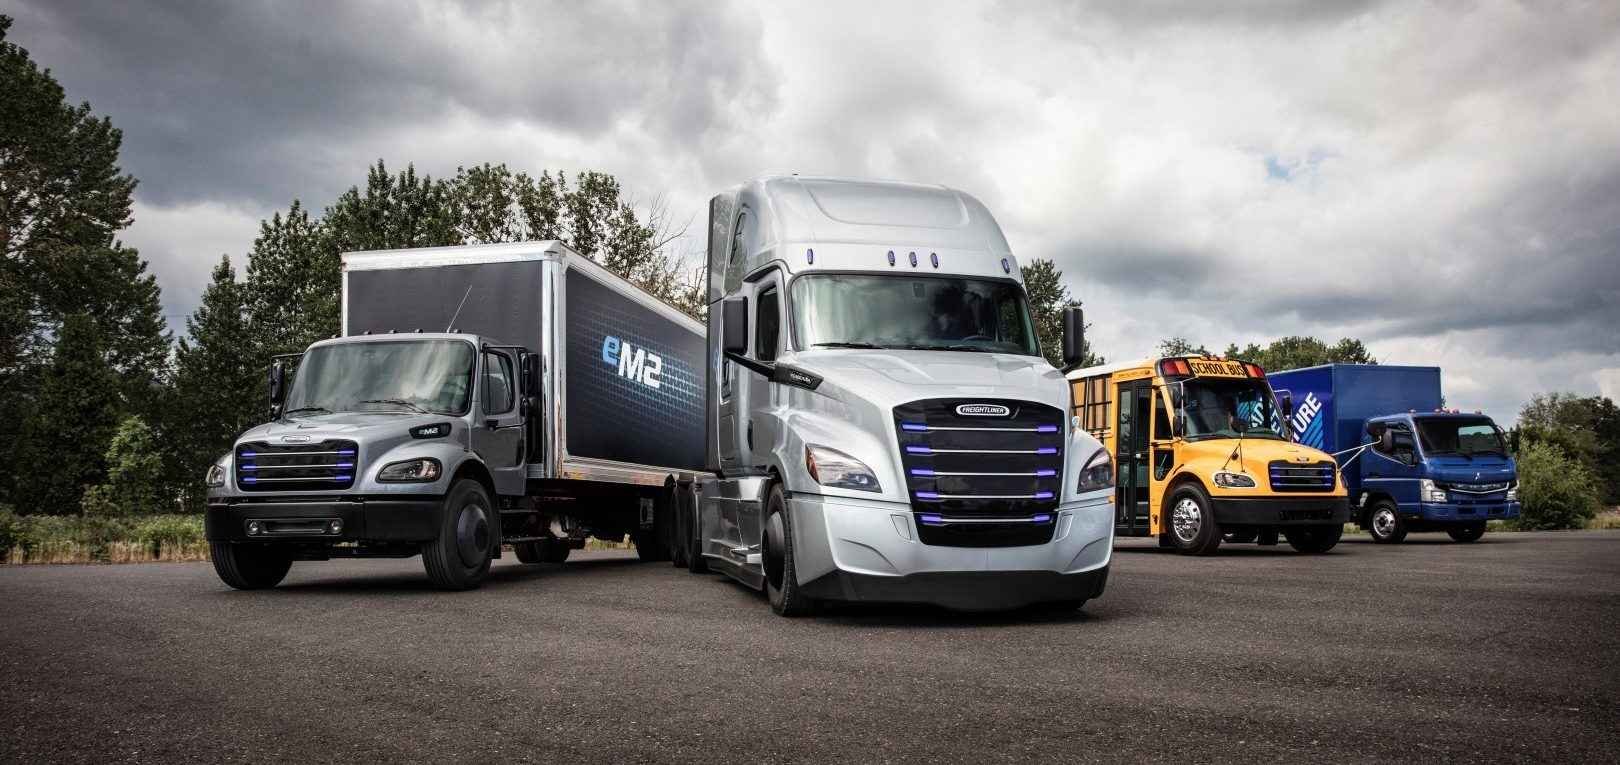 Daimler Unveils Electric Ecascadia Semi Truck To Compete With Tesla Launches Group